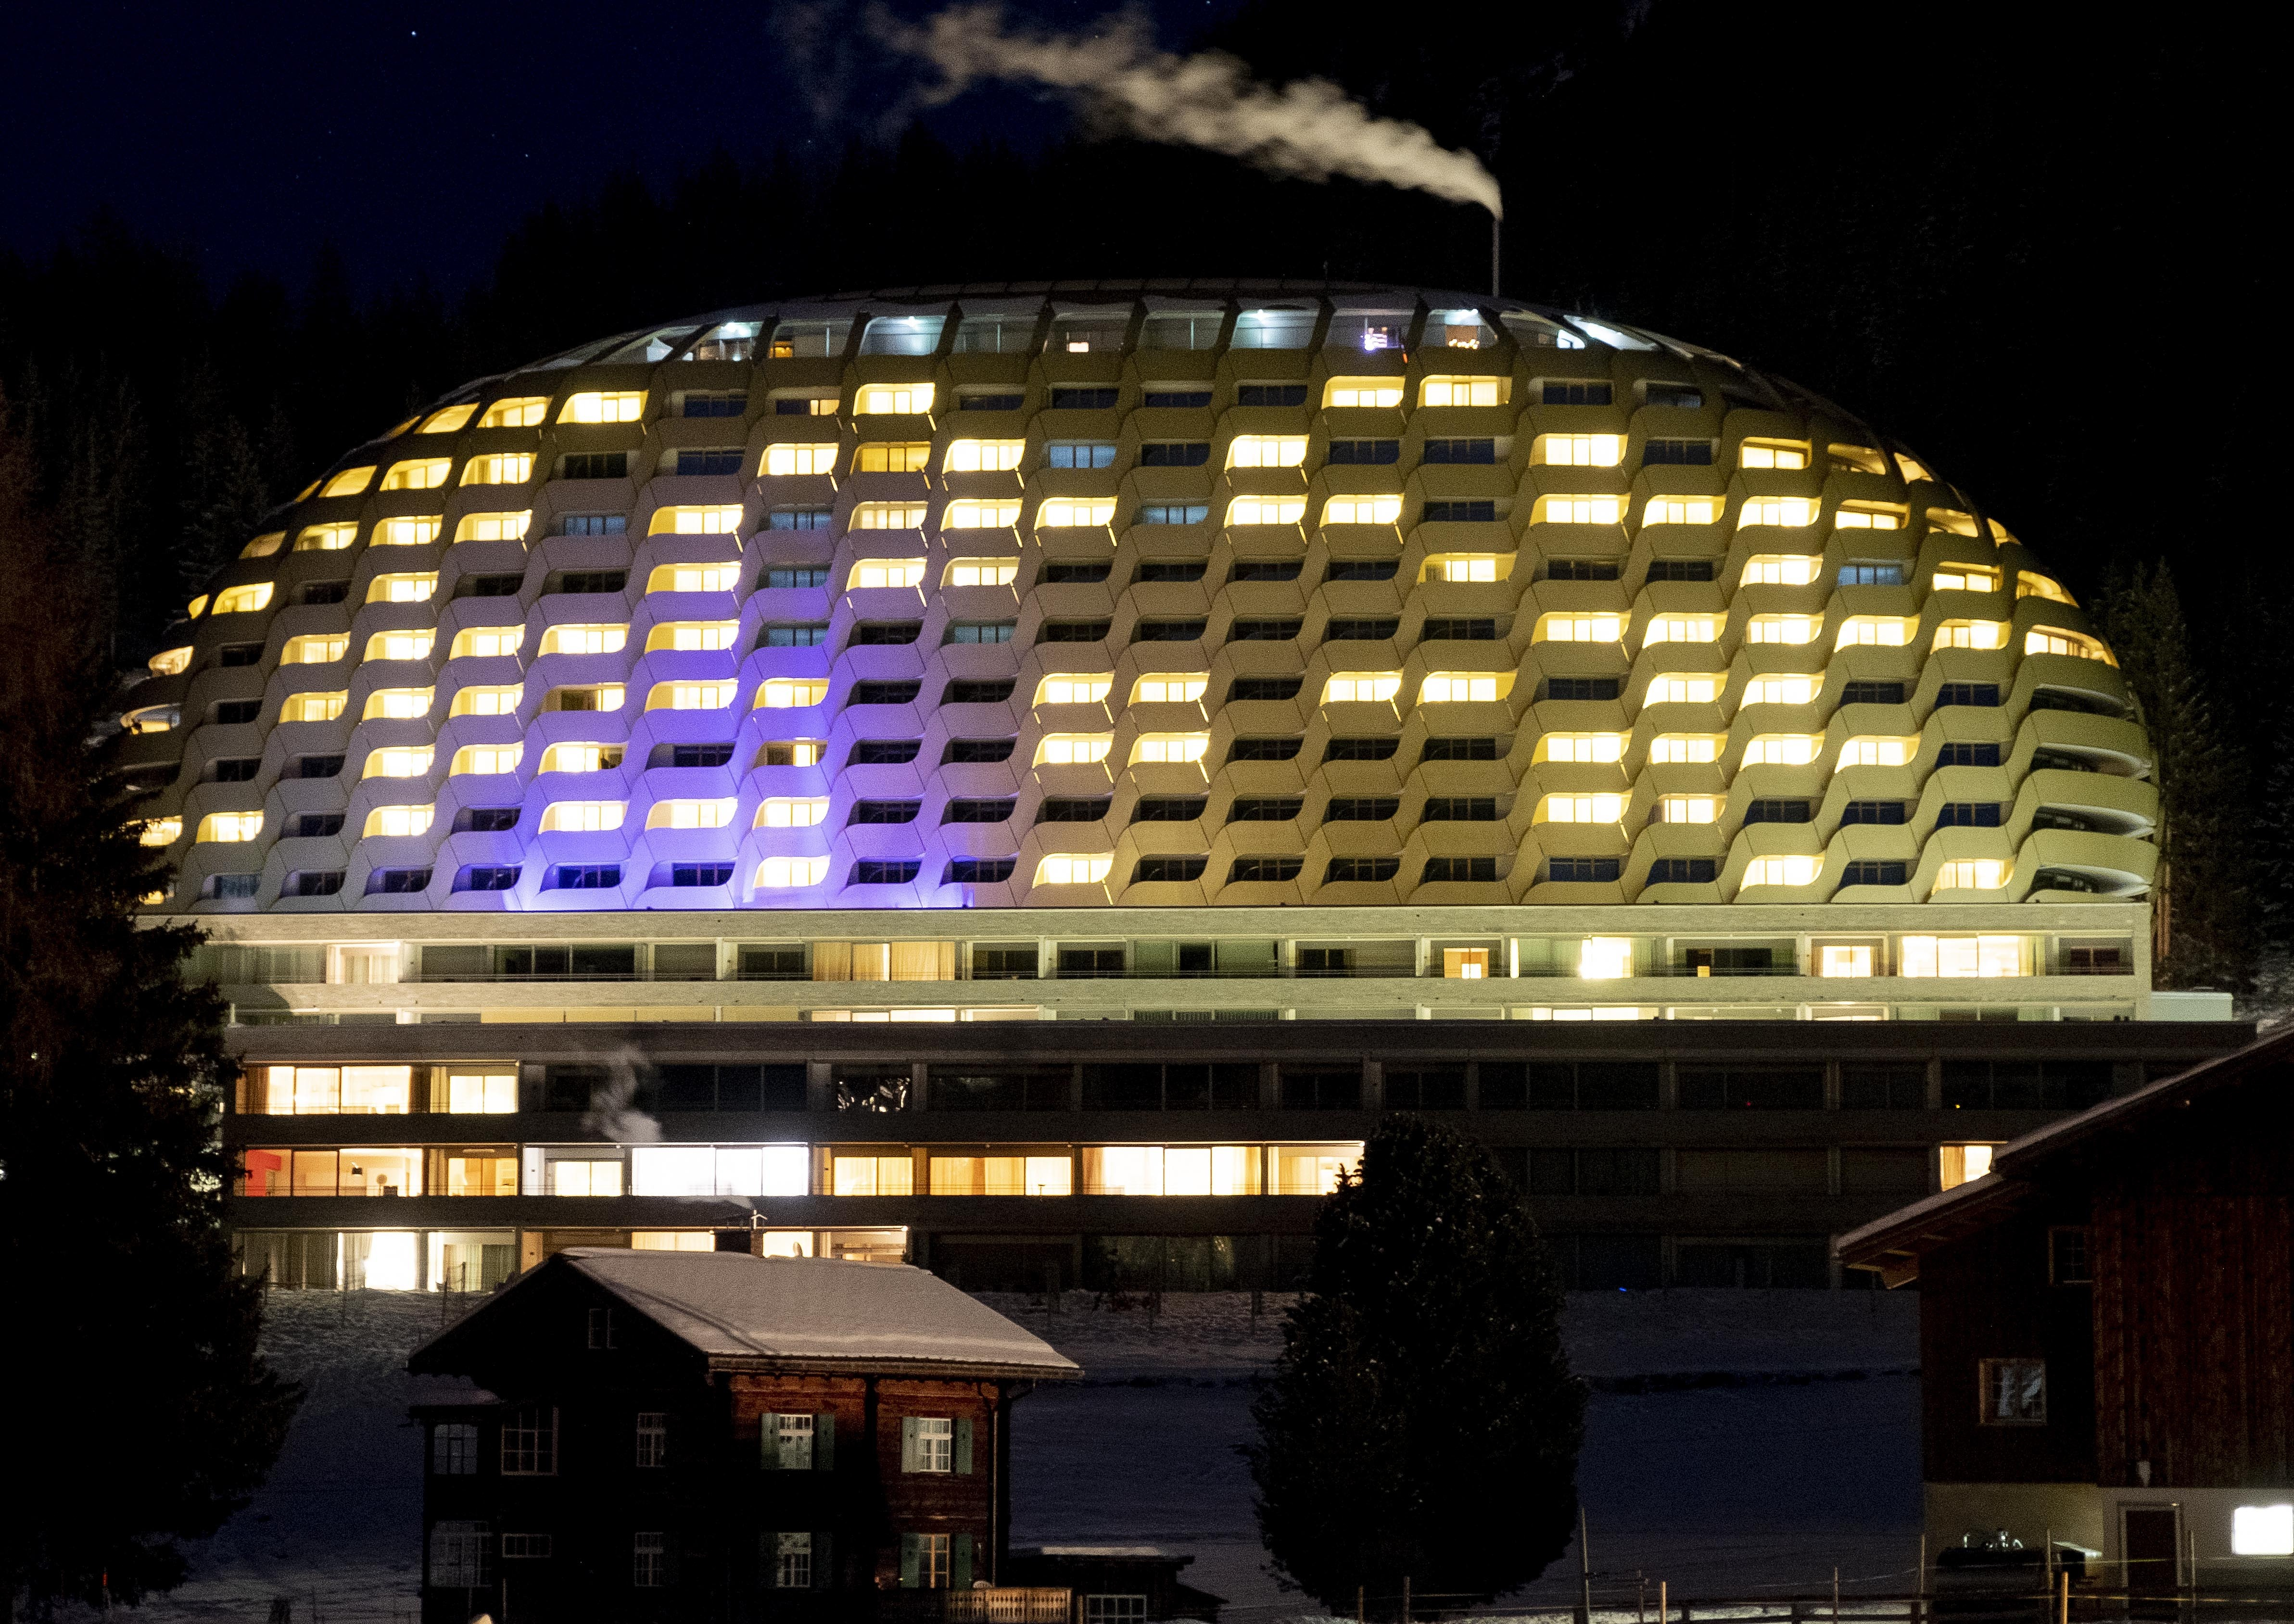 The hotel Intercontinental is seen in Davos, Switzerland, Monday, Jan. 20, 2020.  US President Donald Trump is due to stay at the hotel for one night during his two-days visit to the World Economic Forum. The World Economic Forum will start on Tuesday. (AP Photo/Michael Probst)